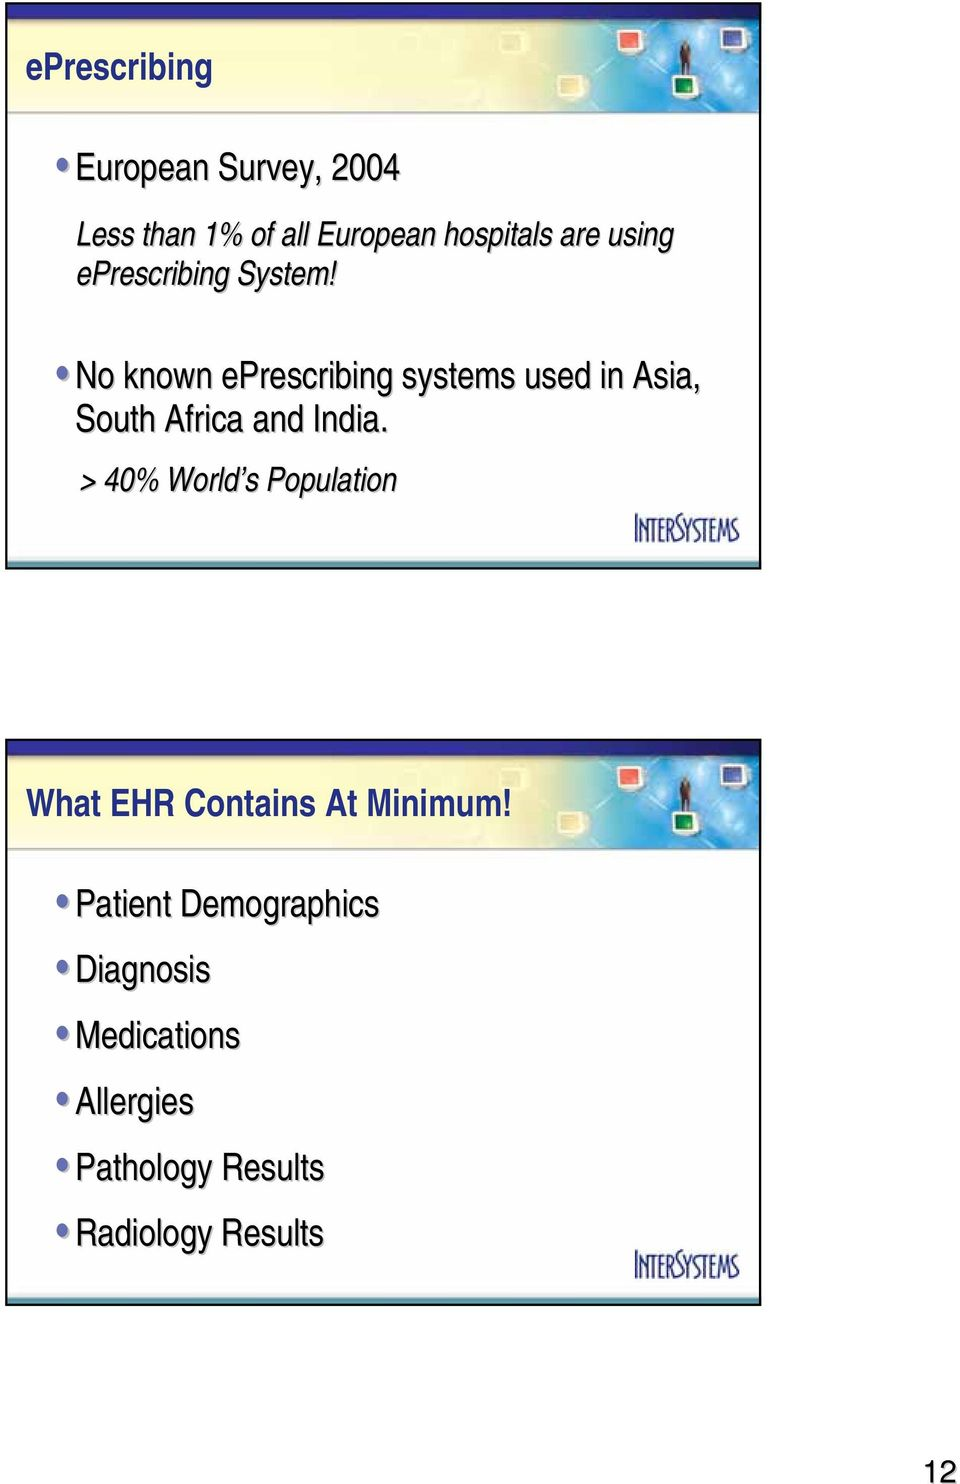 No known eprescribing systems used in Asia, South Africa and India.